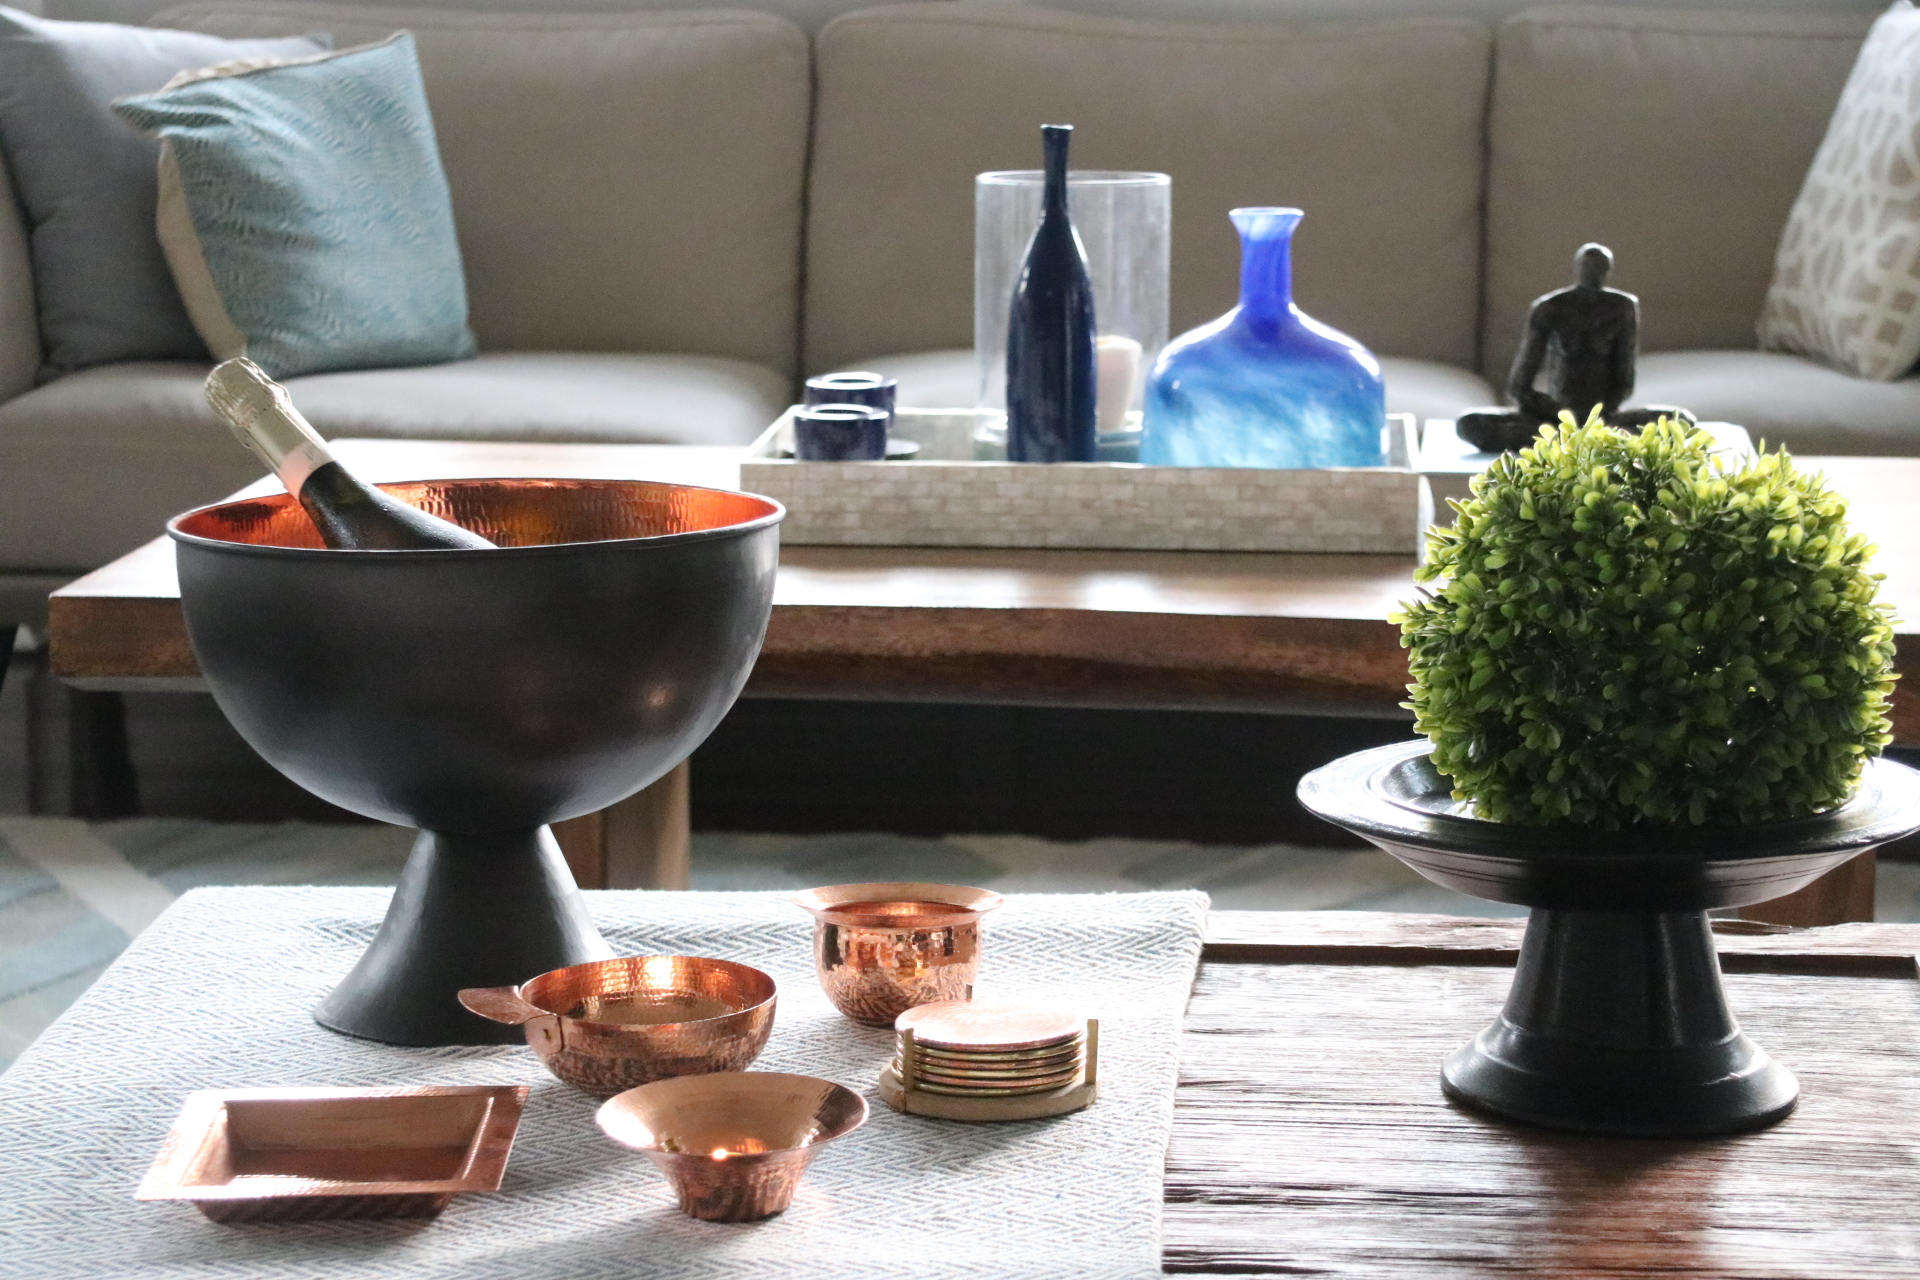 The Copper Yard - Luxurious Décor & Gift Ideas